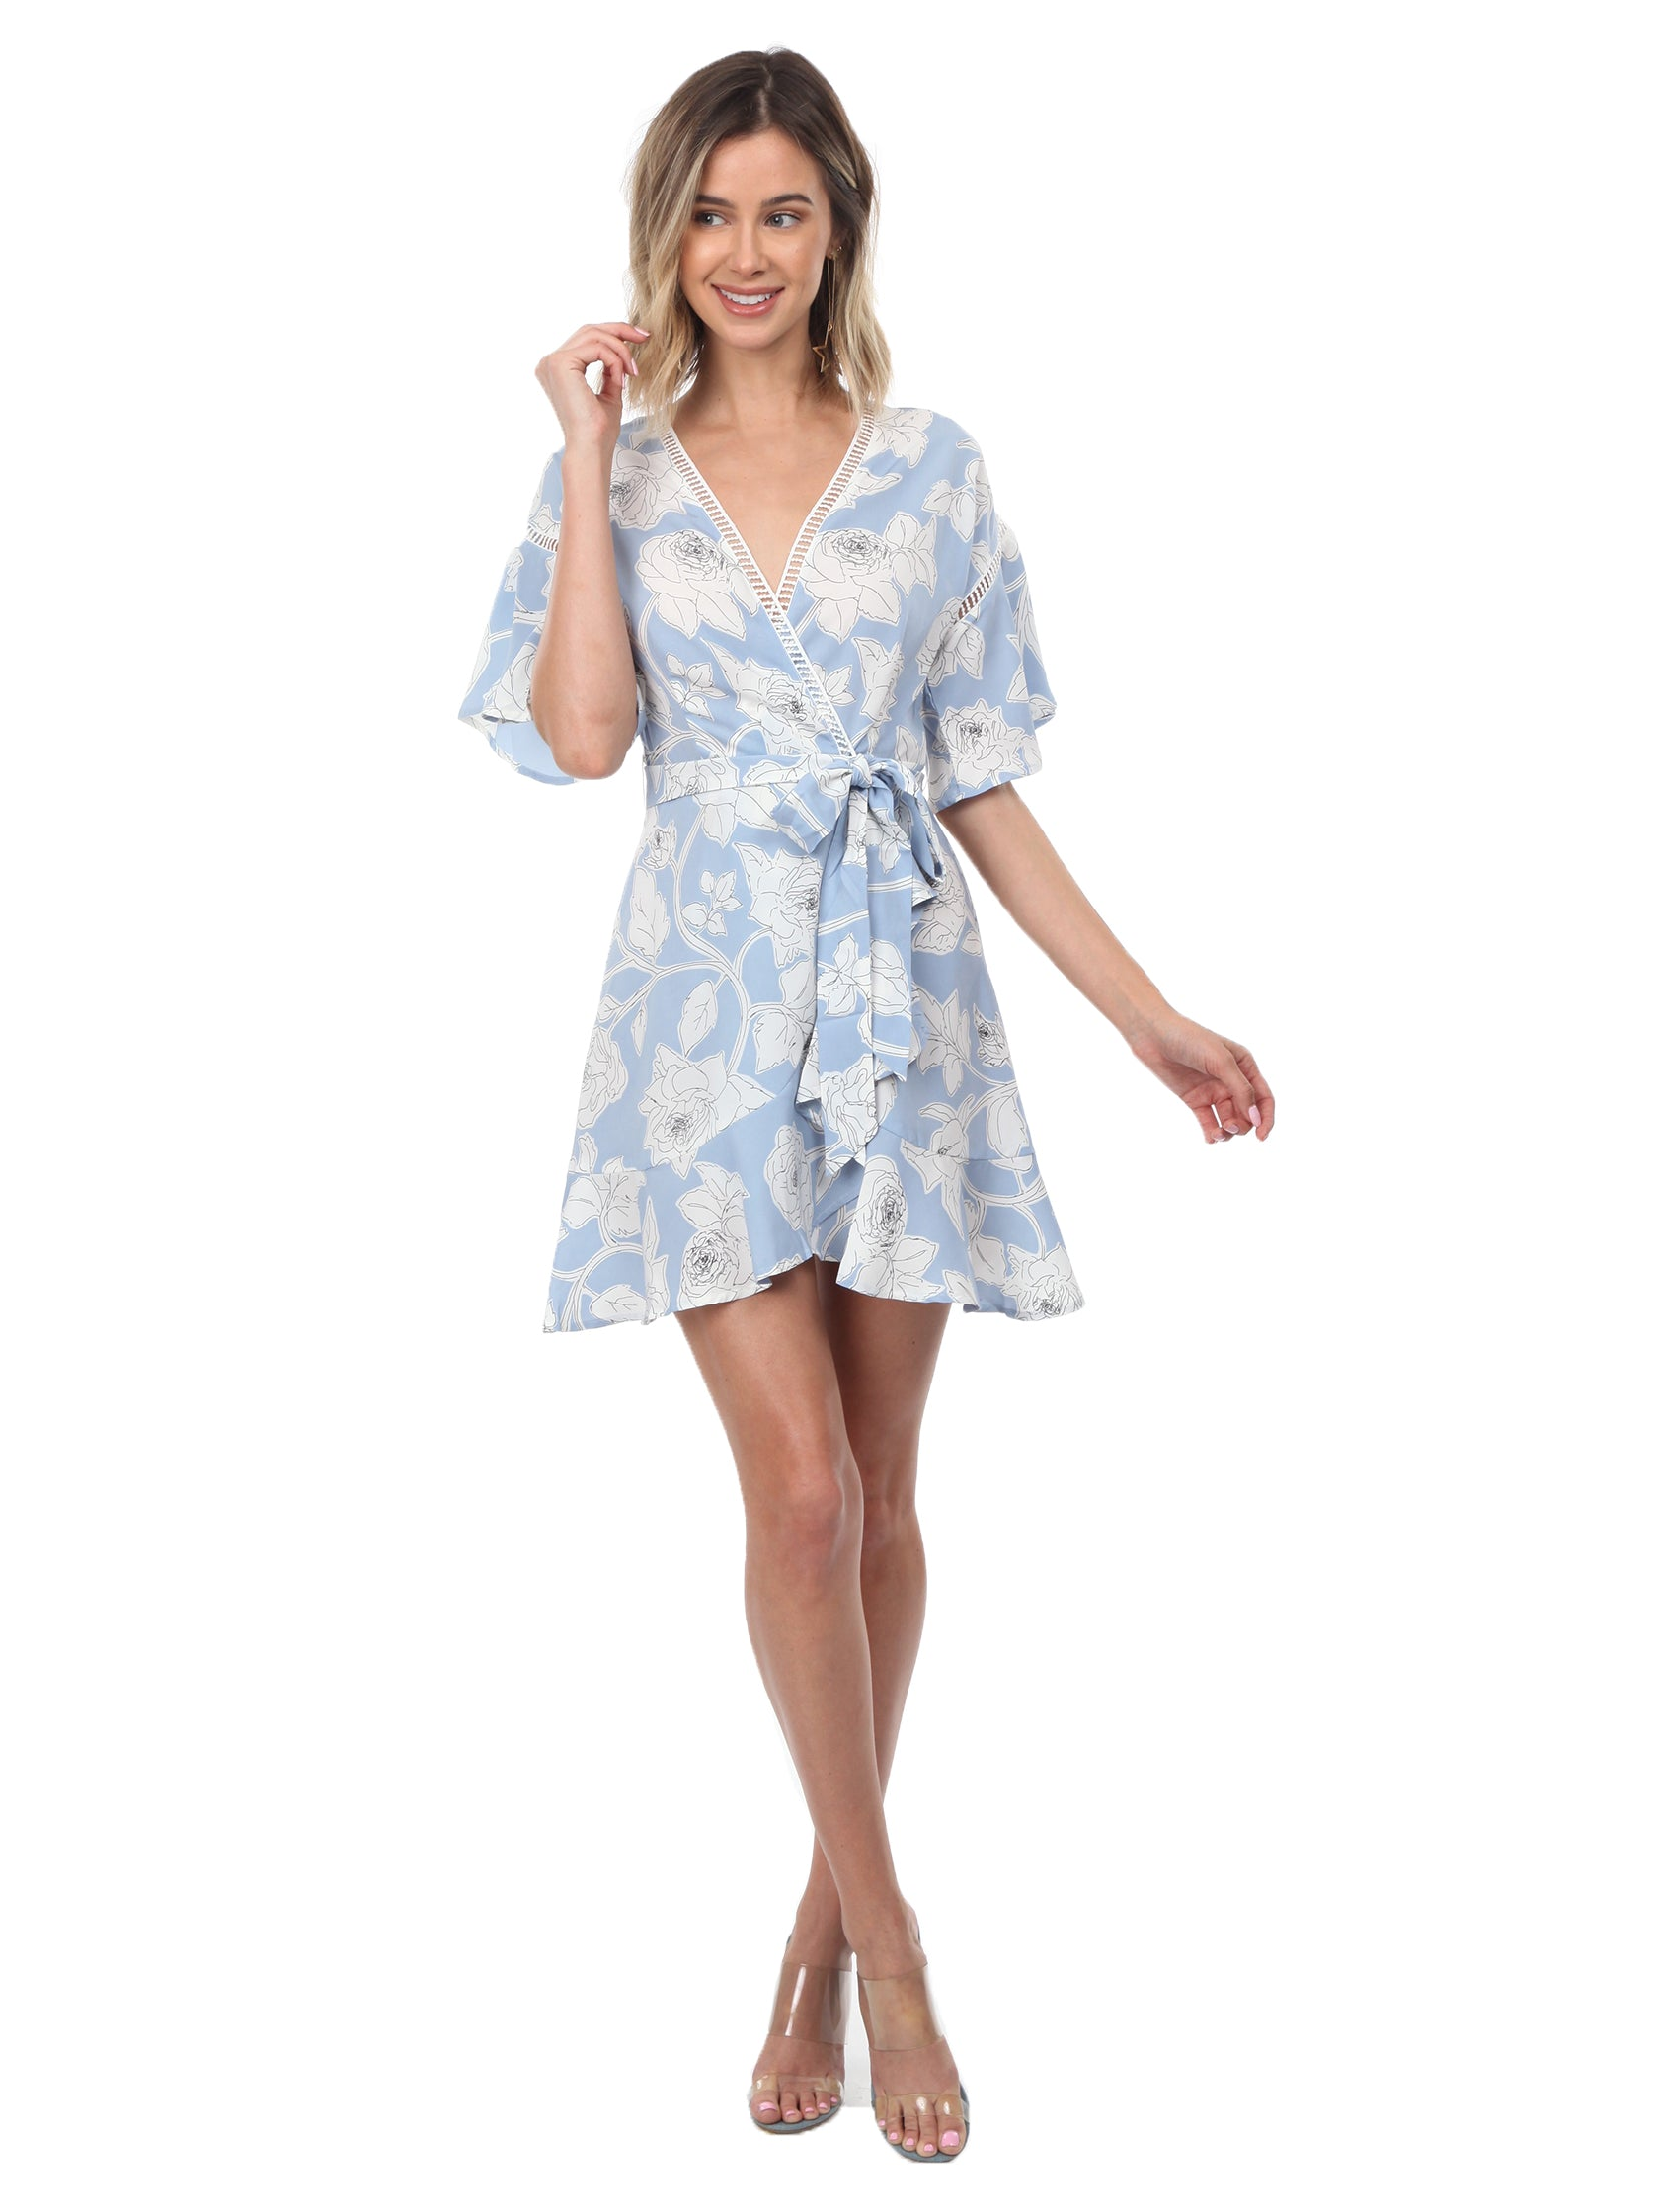 Woman wearing a dress rental from Moon River called Floral Printed Wrap Dress